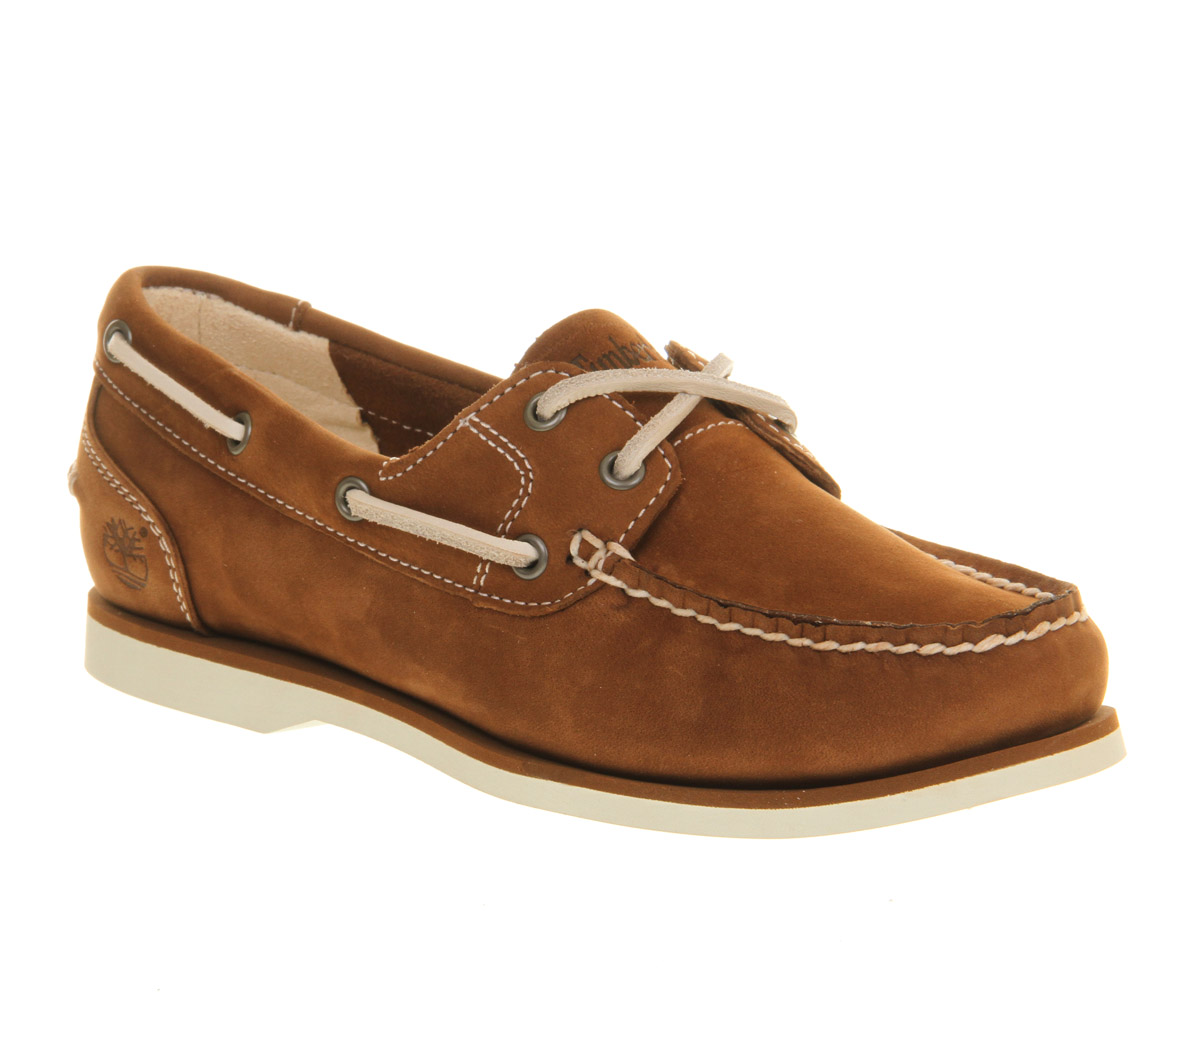 timberland women's classic boat shoes tan